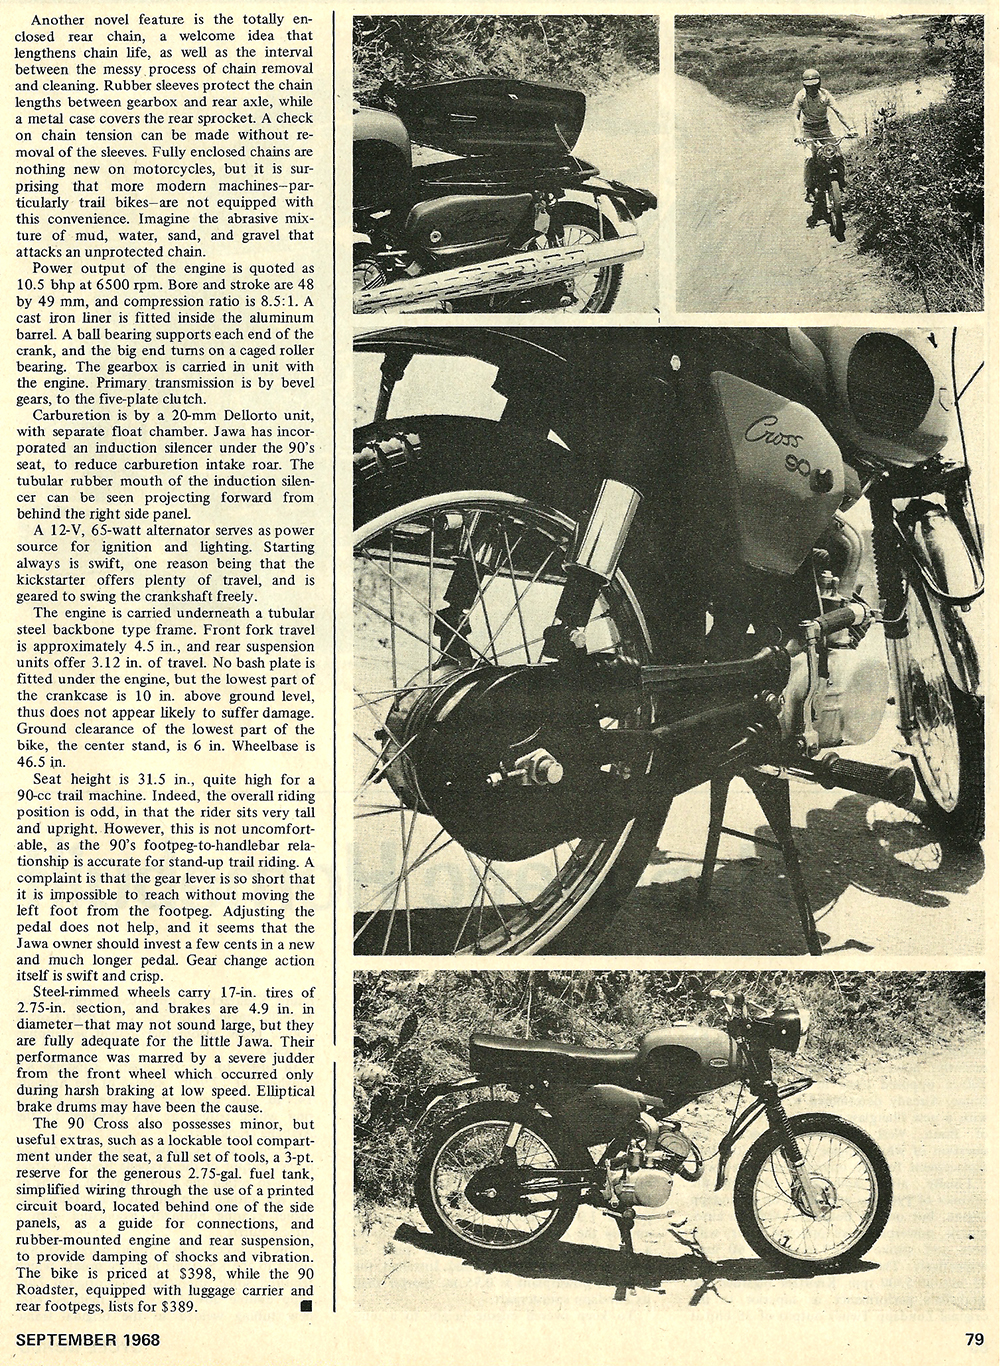 1968 Jawa 90 Cross road test 02.jpg